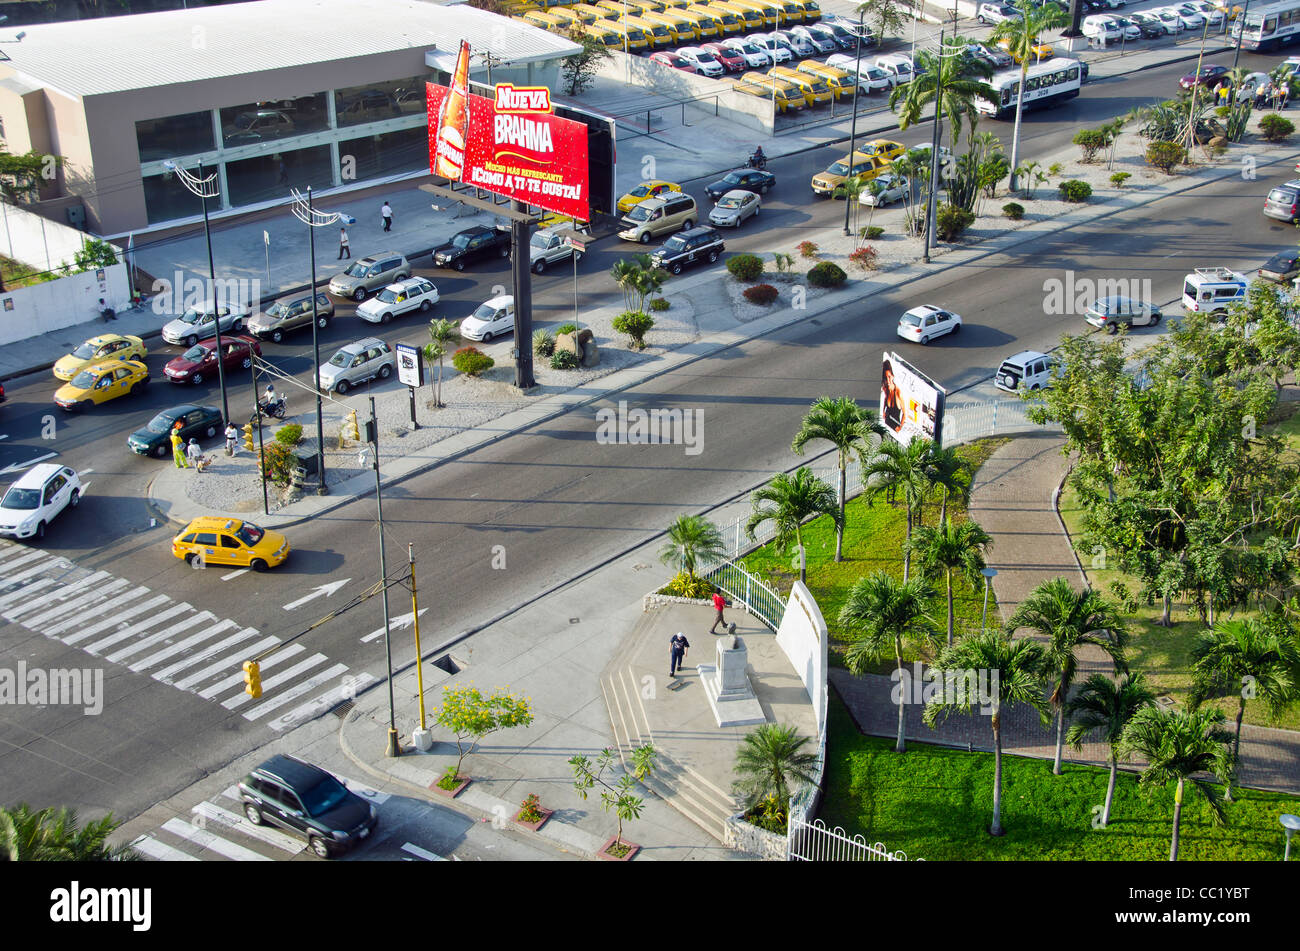 Quayaquil, Ecuador, city scenic traffic taken from above - Stock Image